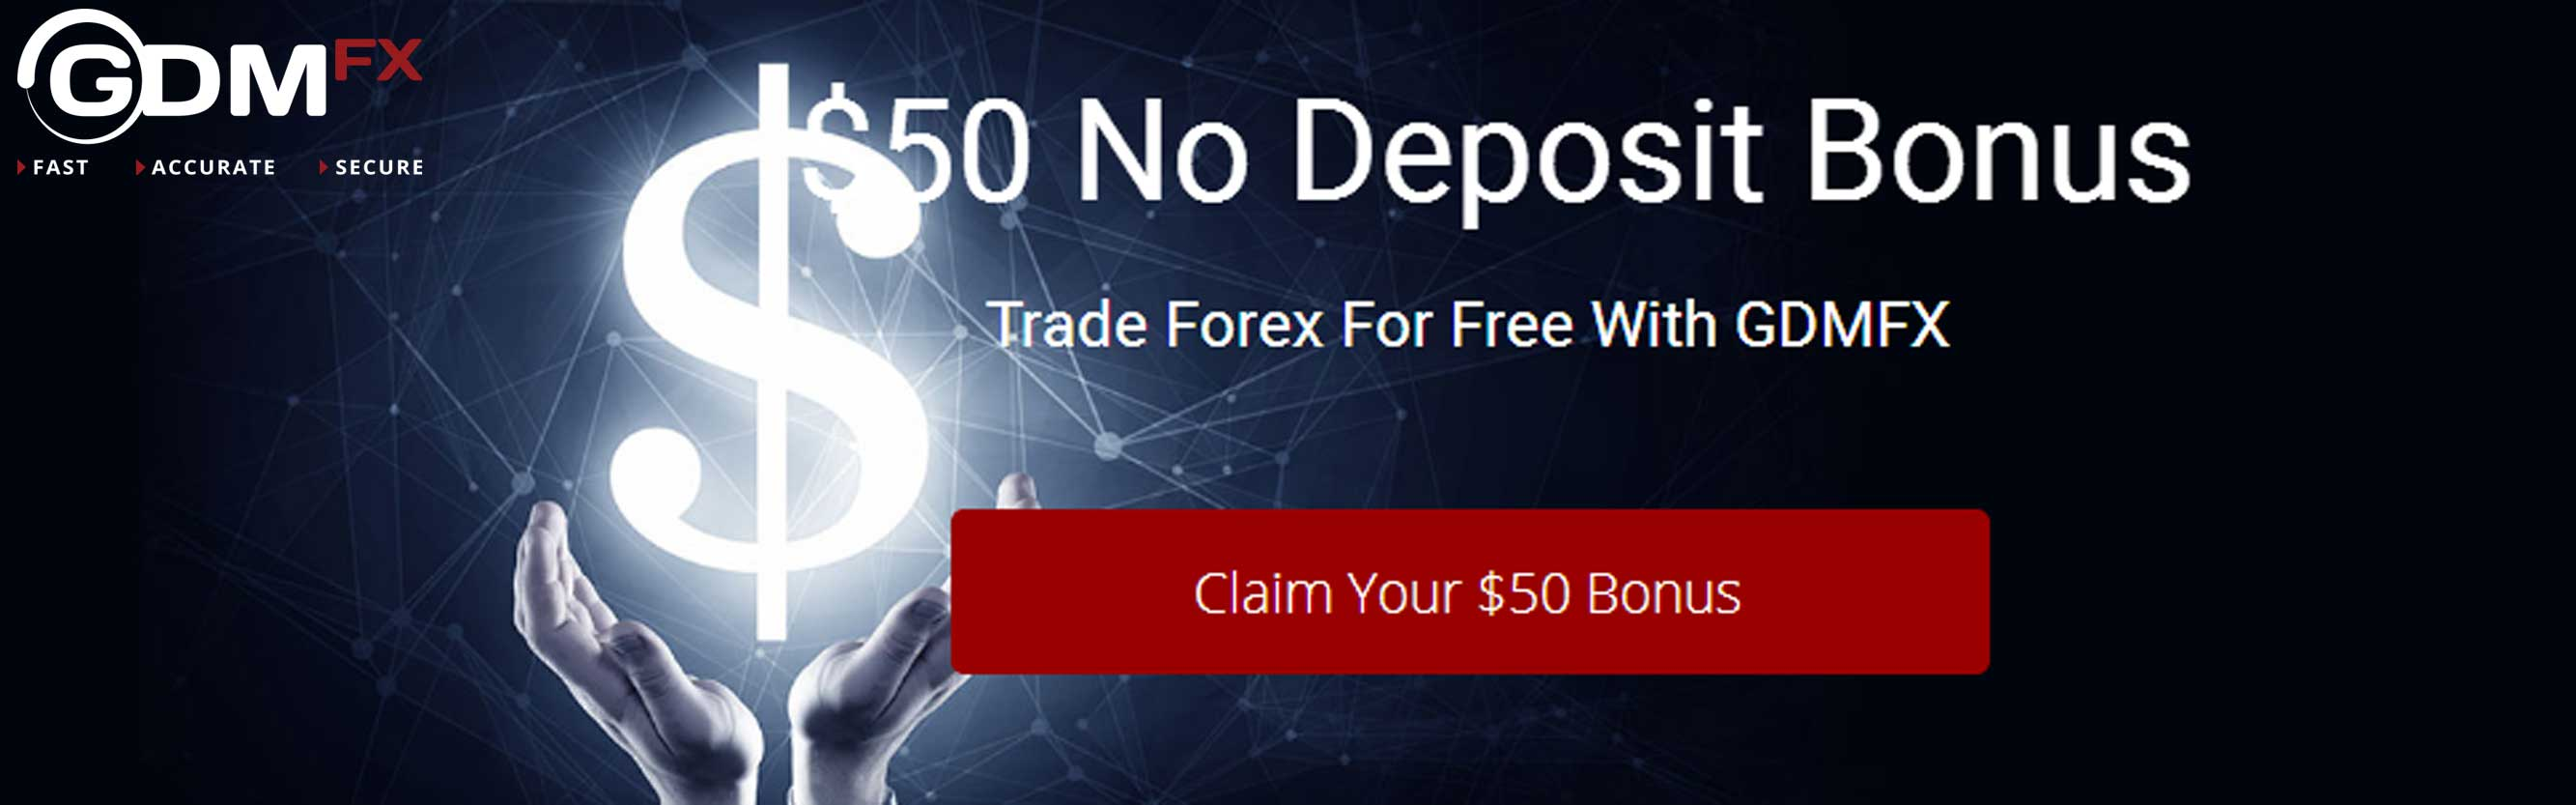 Capital one forex no deposit bonus